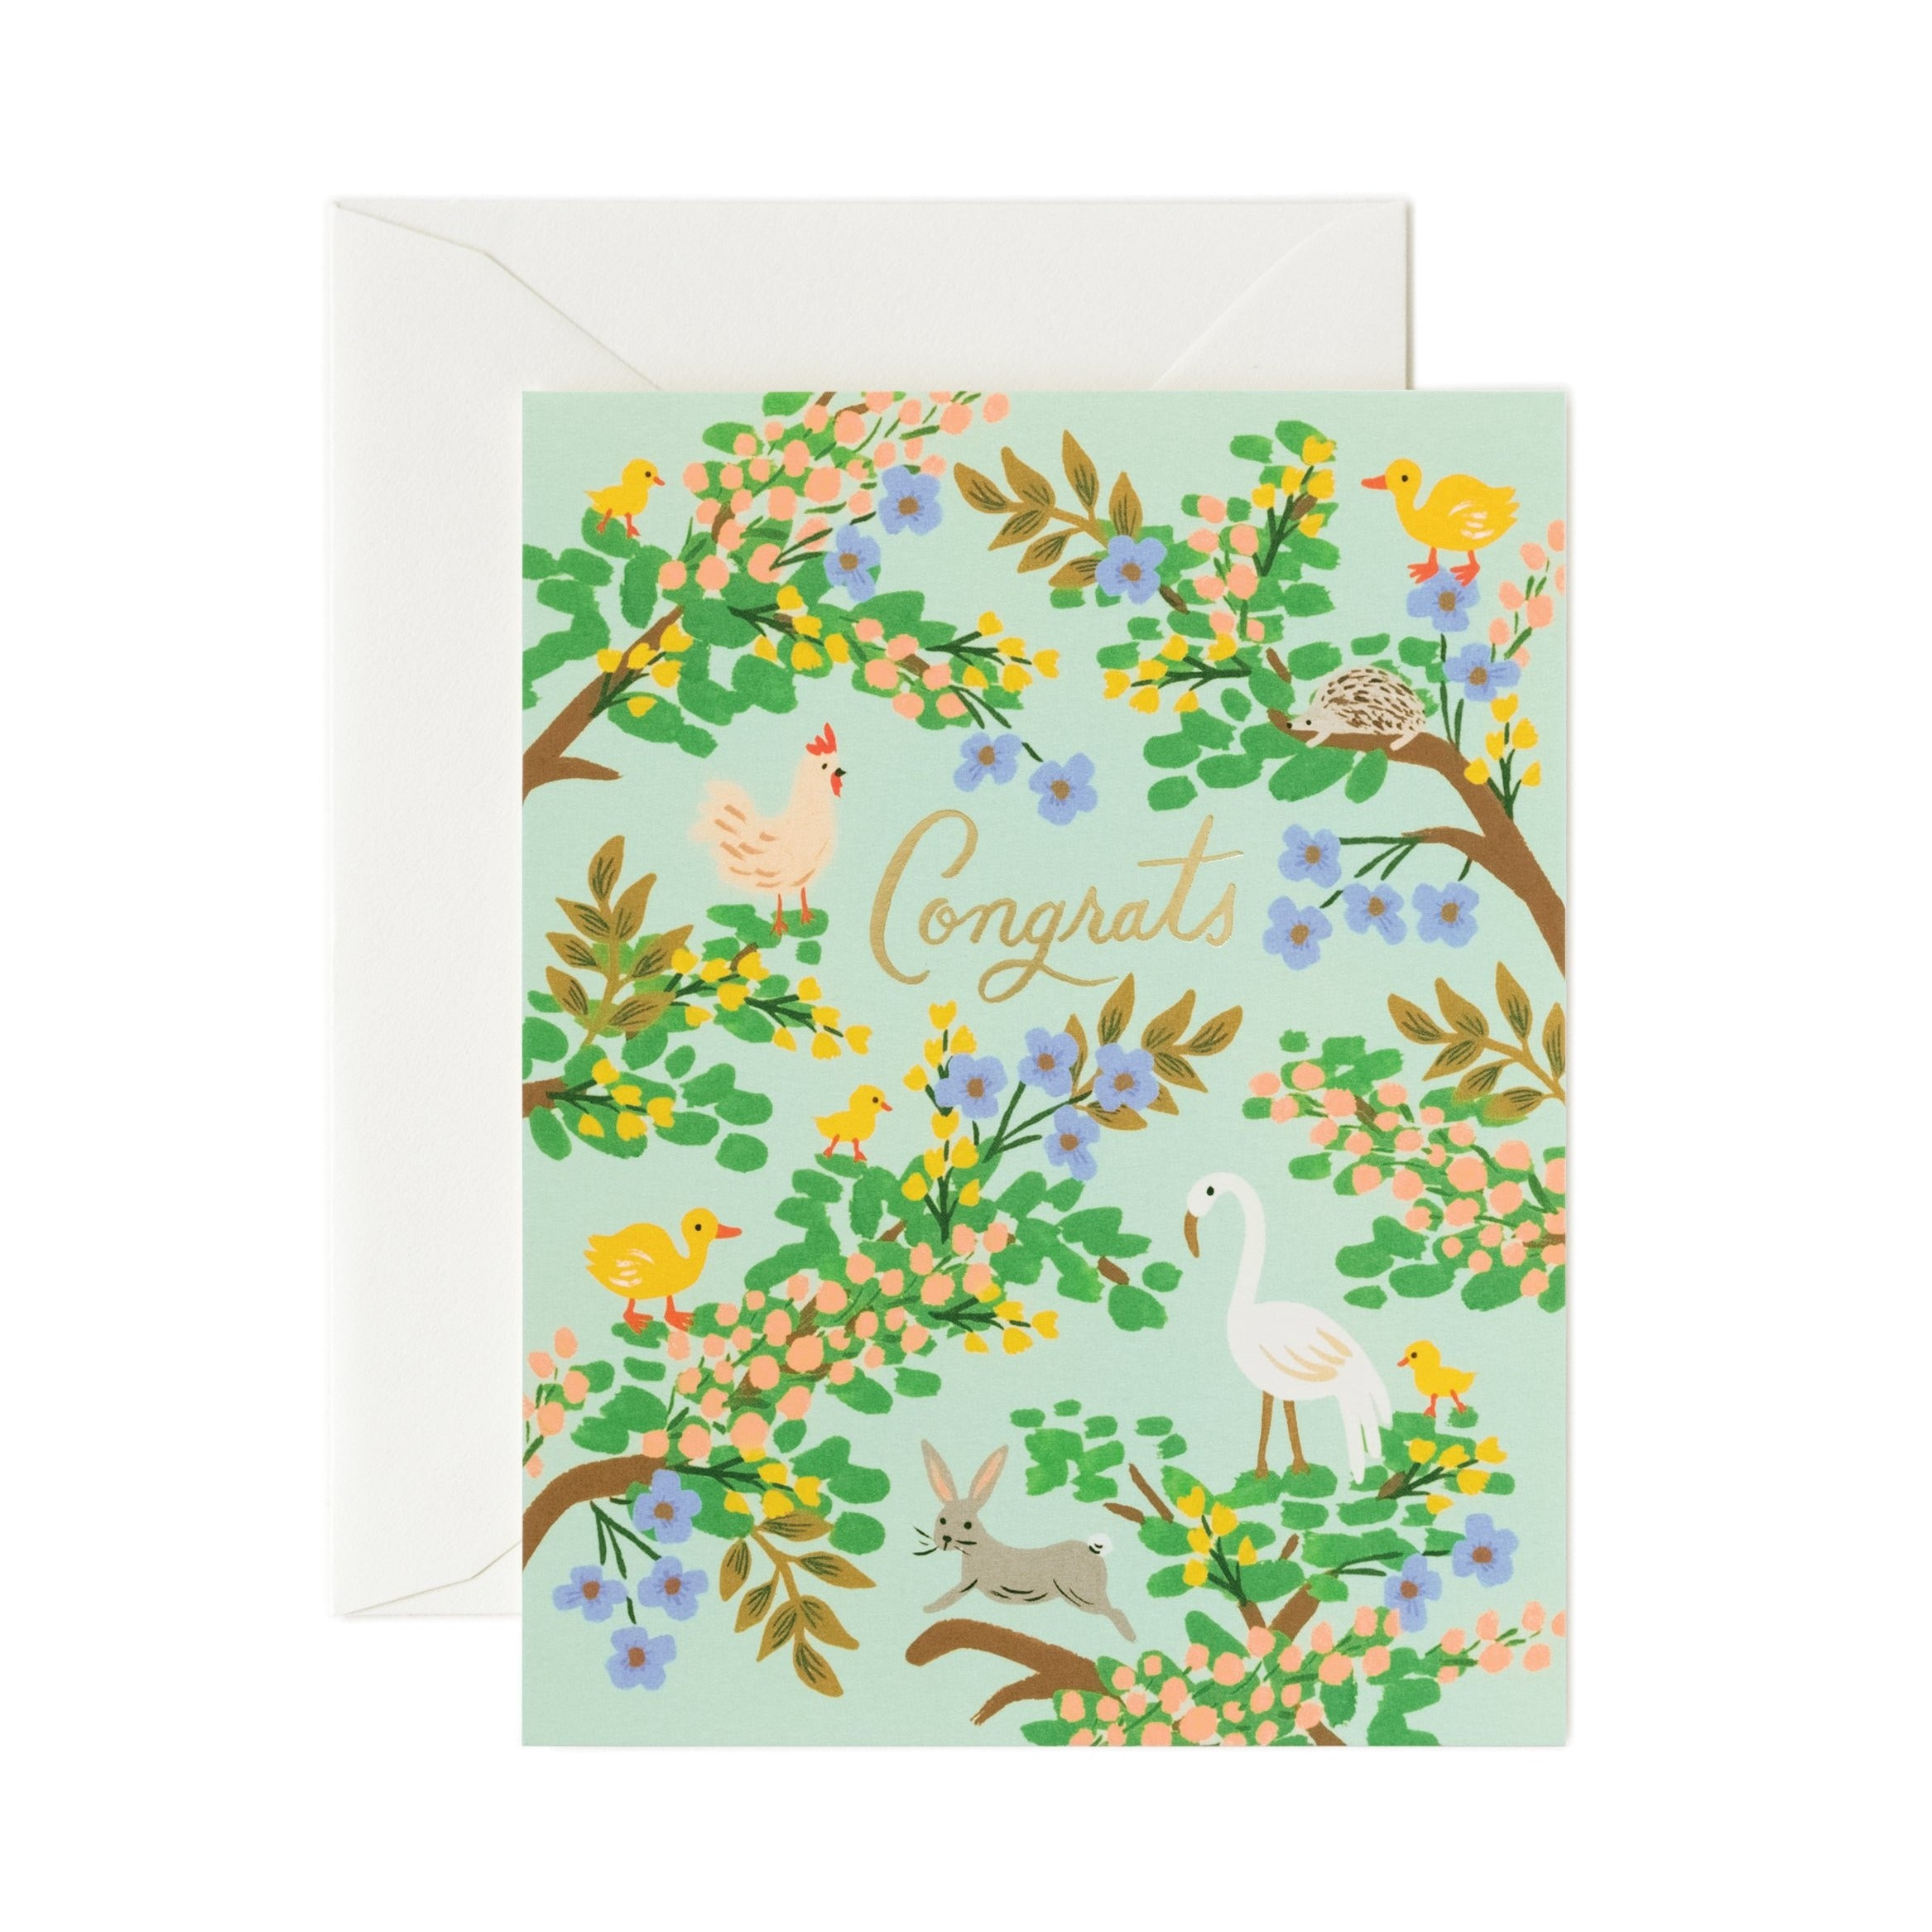 Congrats Forest Baby Card